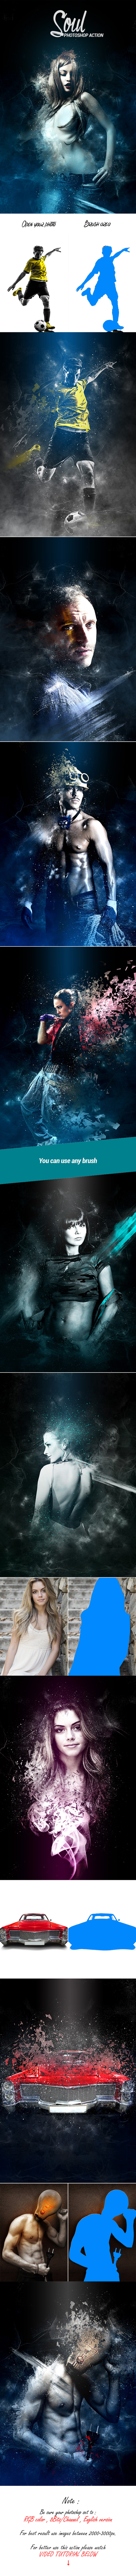 Soul - Photoshop Action - Photo Effects Actions